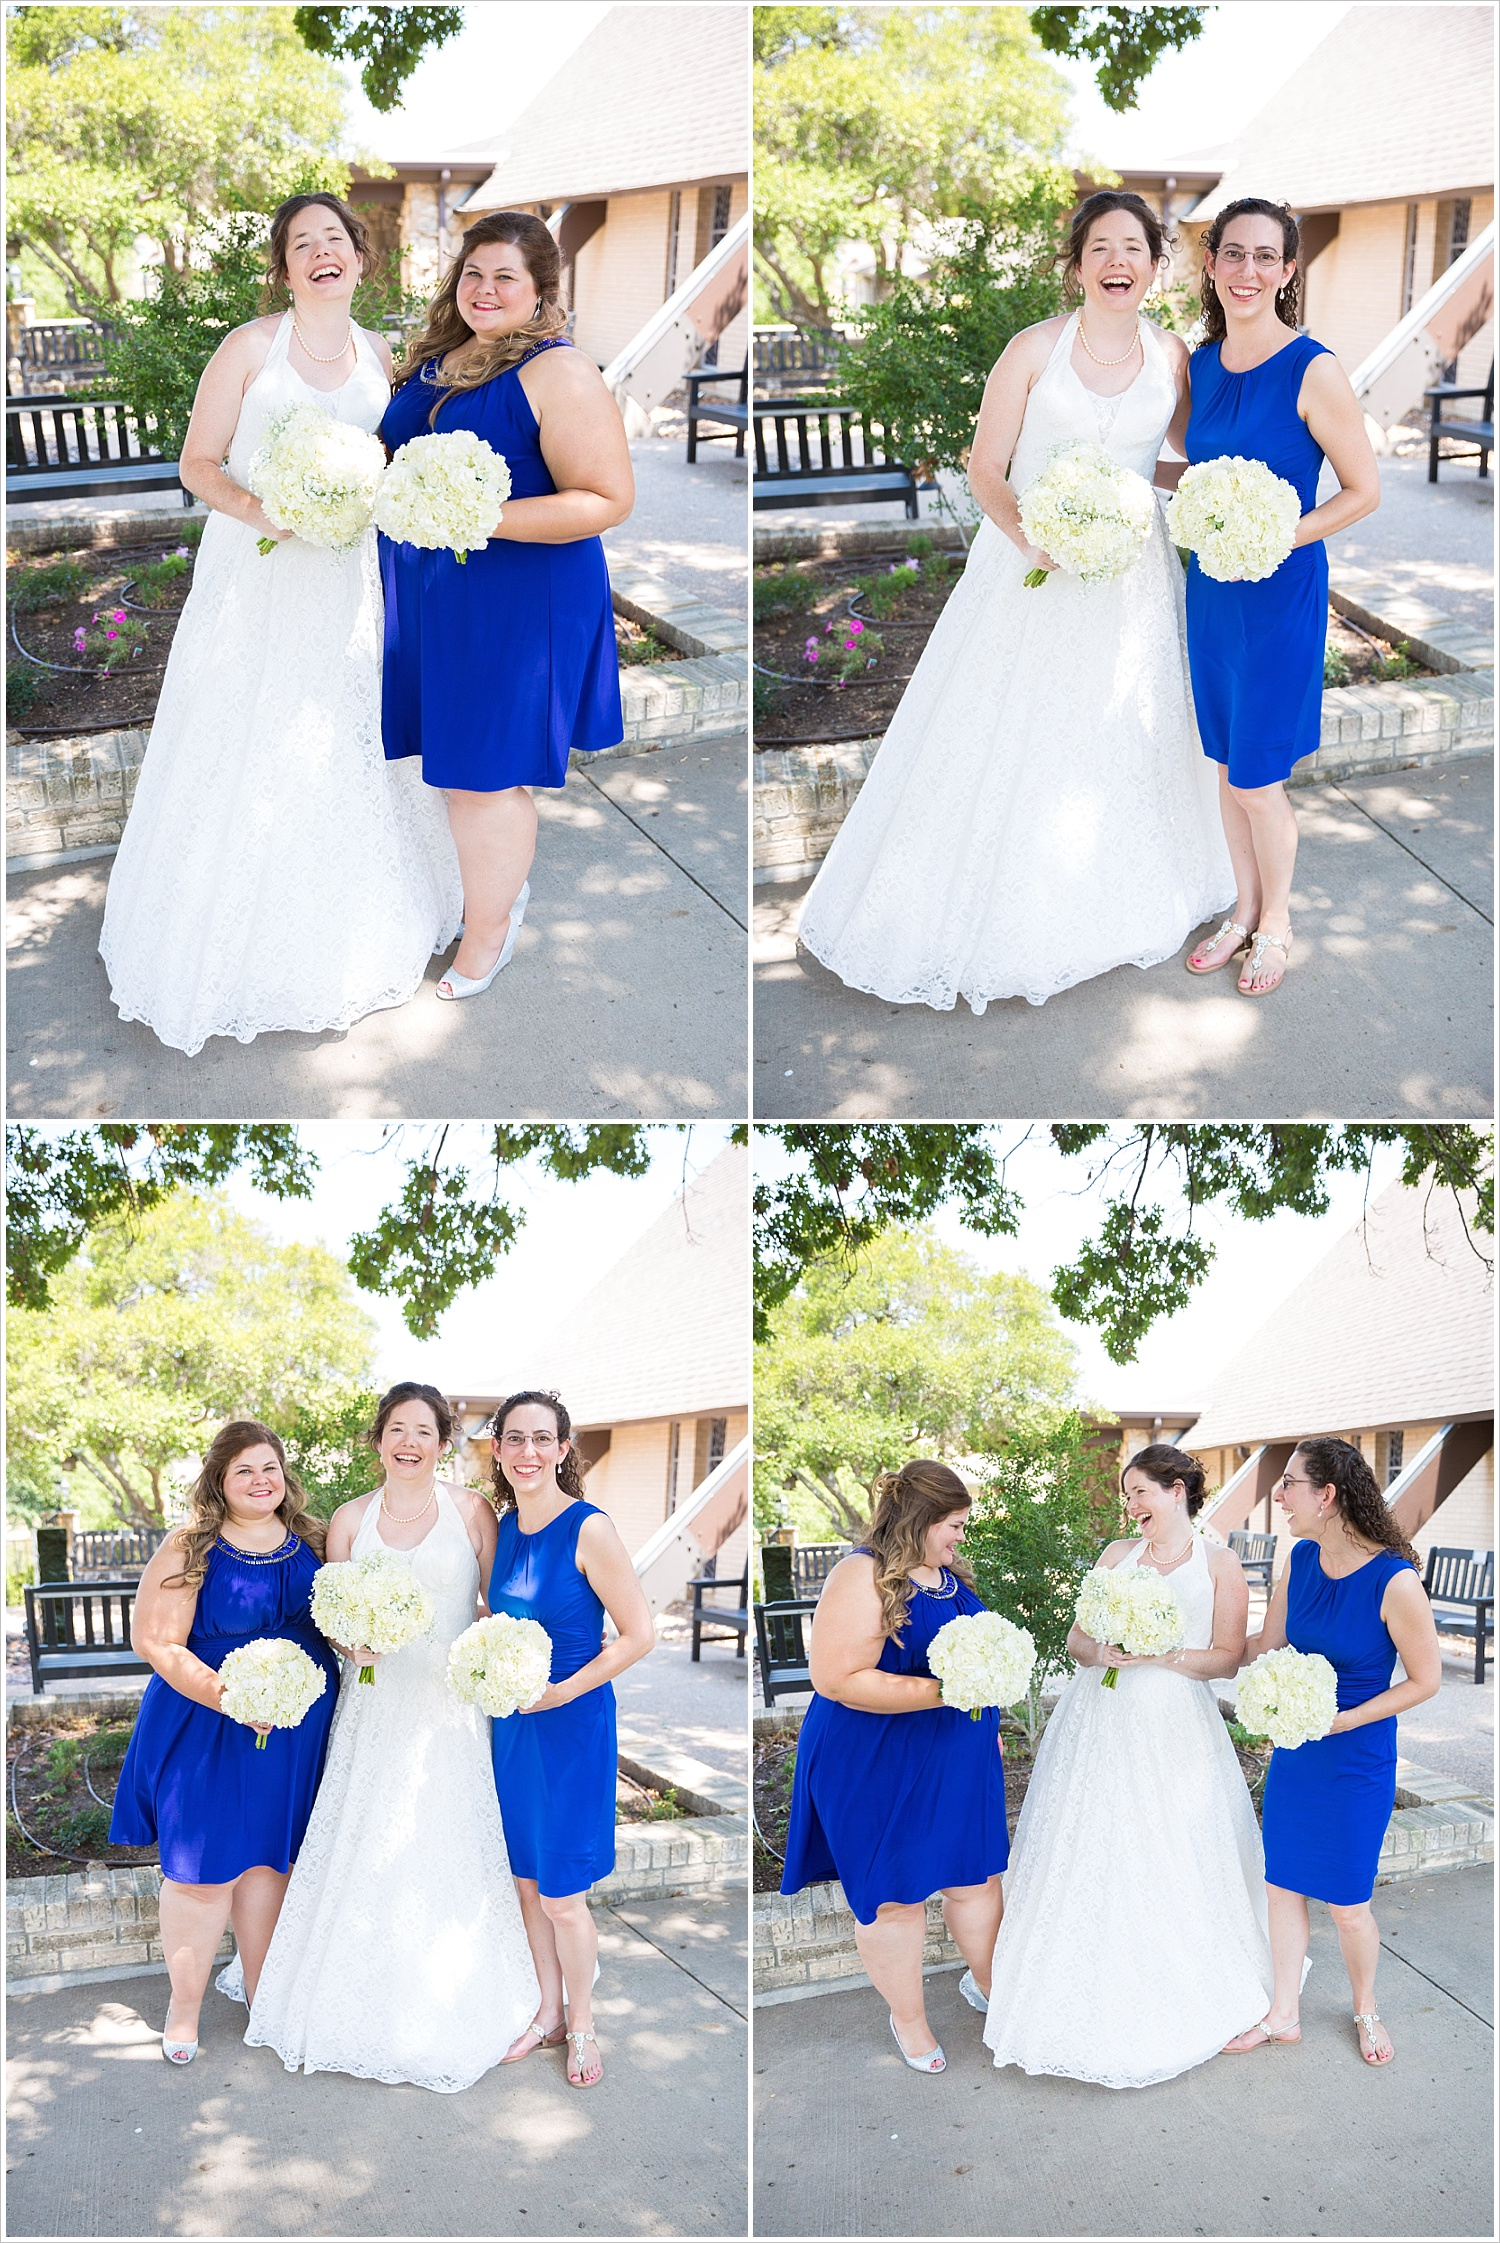 Bride in lace wedding gown poses with her bridesmaids in sapphire blue dress outside Bride and groom in wedding ceremony in front of gorgeous stained glass backdrop at Central Presbyterian Church in Waco/Woodway, TX - Jason & Melaina Photography, www.jasonandmelaina.com